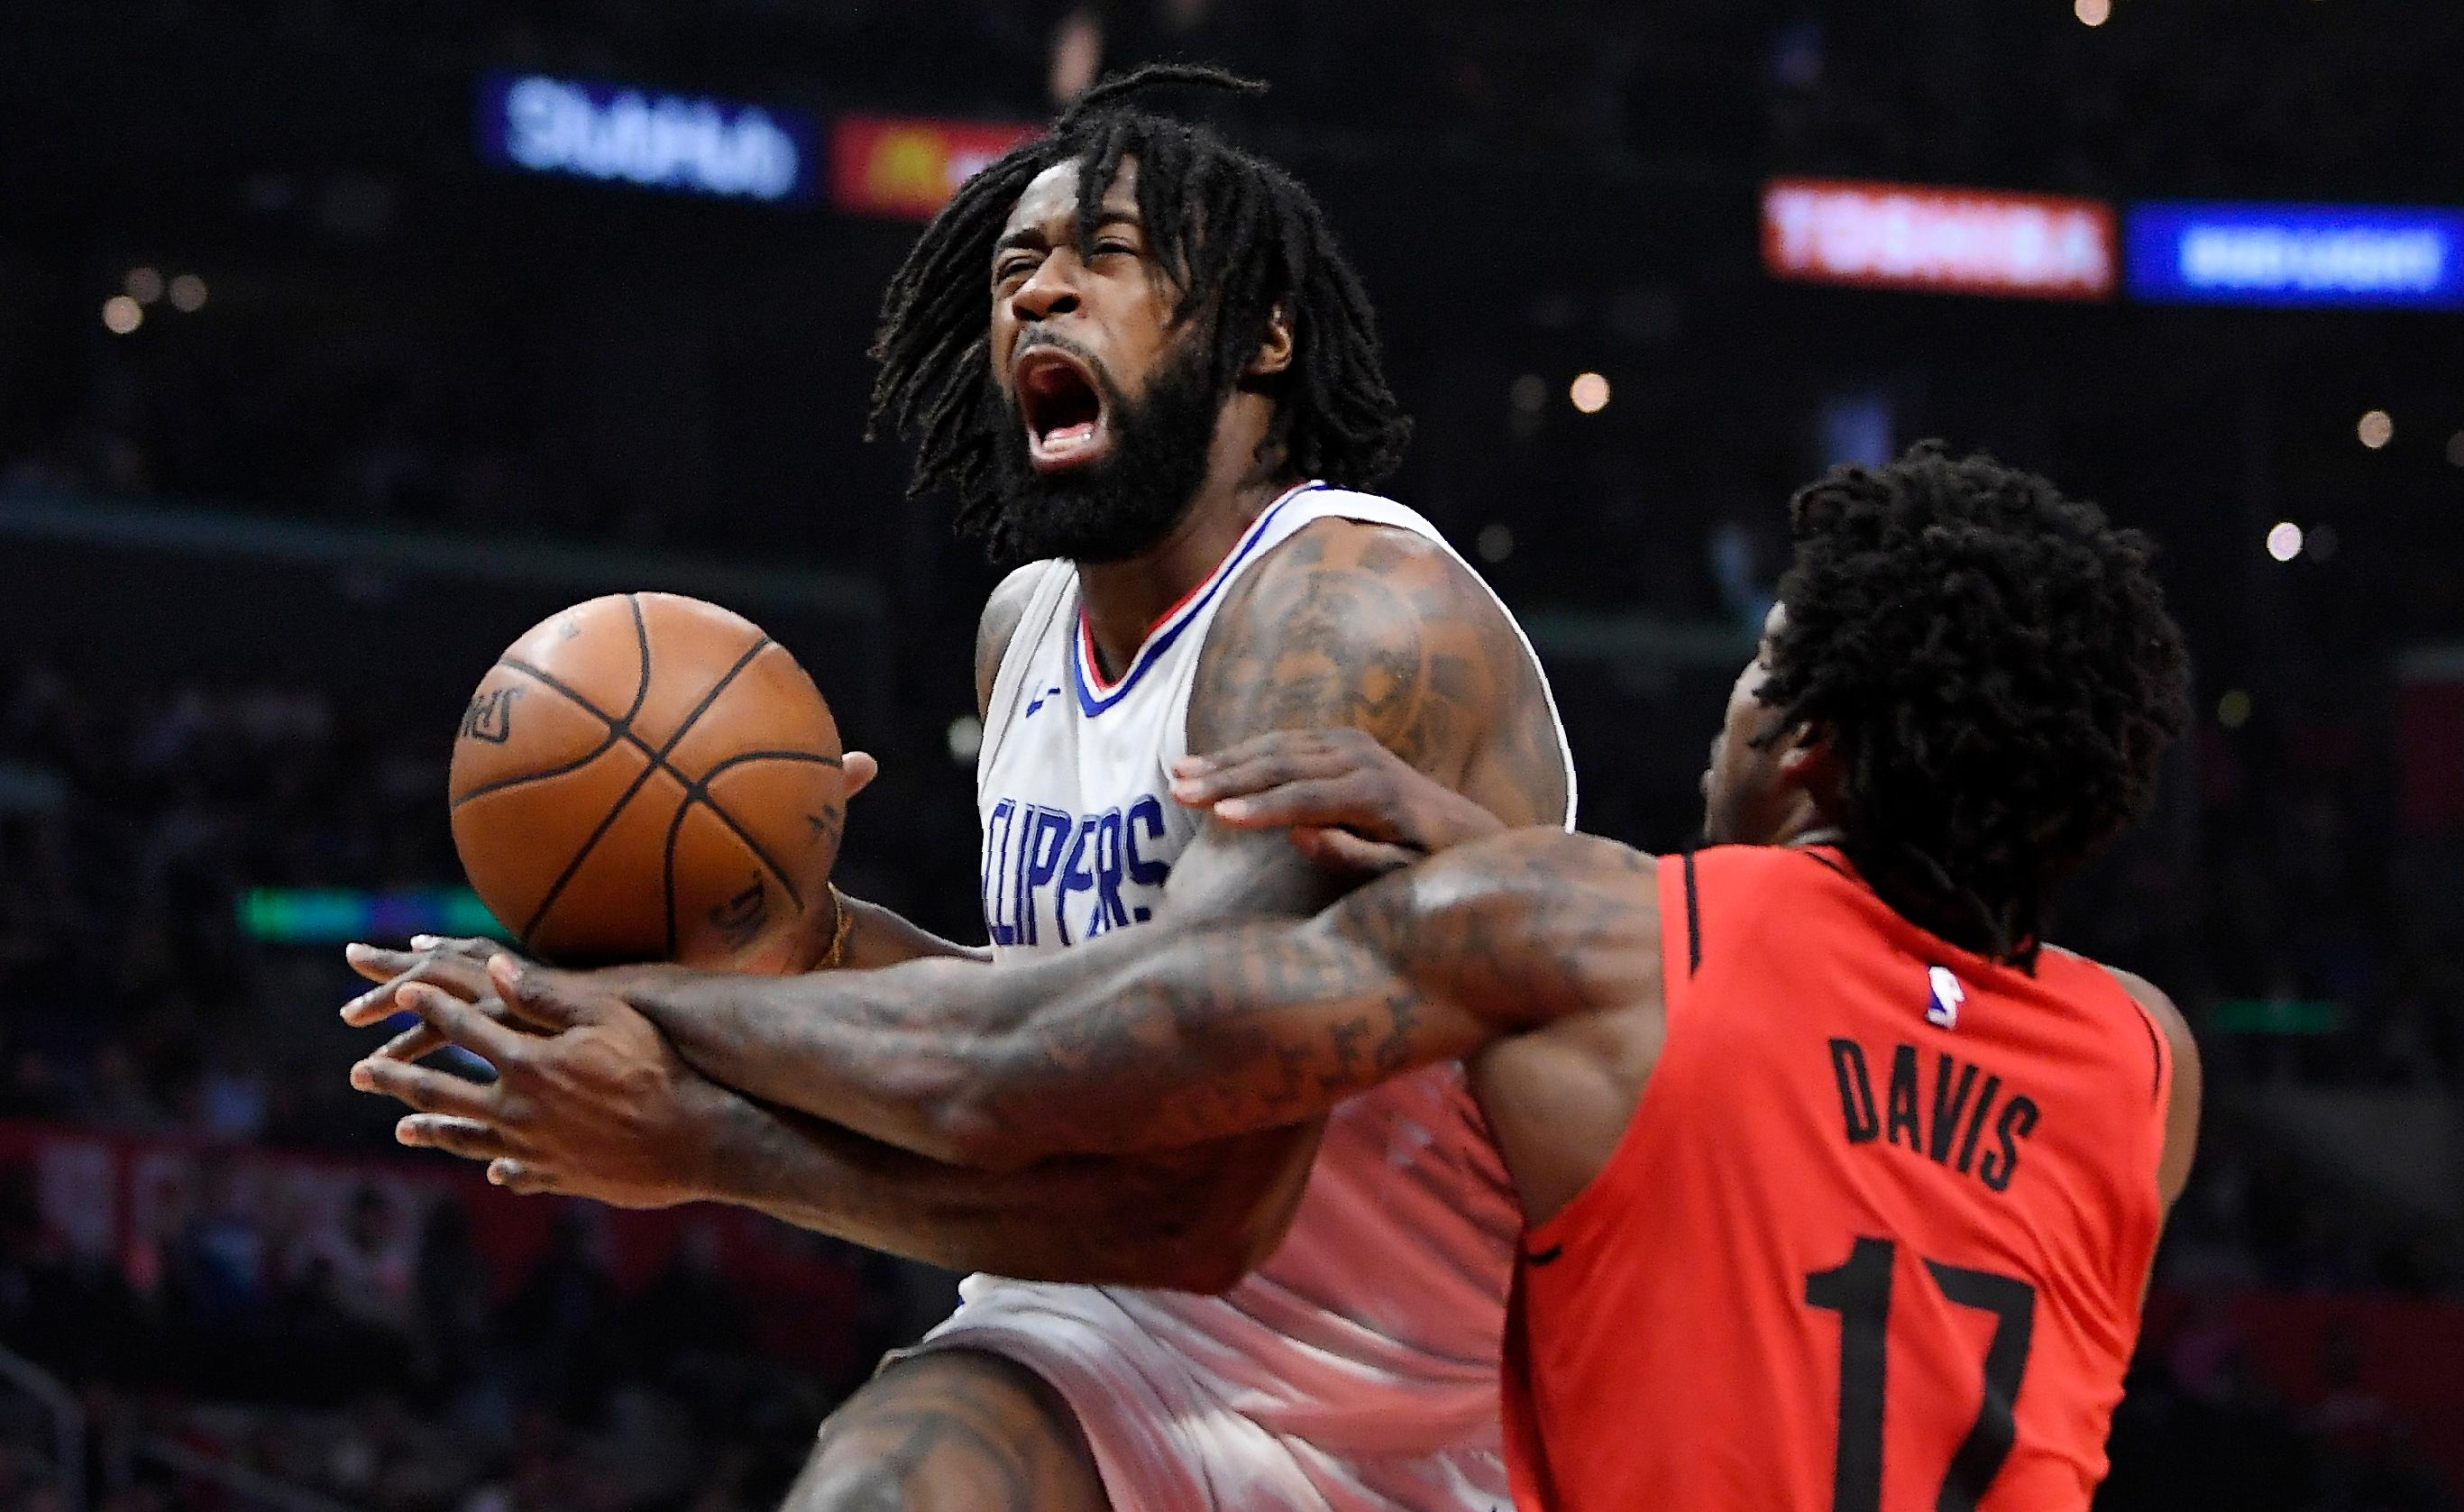 Portland Trail Blazers forward Ed Davis, right, reaches in on Los Angeles Clippers center DeAndre Jordan during the first half of an NBA basketball game, Tuesday, Jan. 30, 2018, in Los Angeles. (AP Photo/Mark J. Terrill)